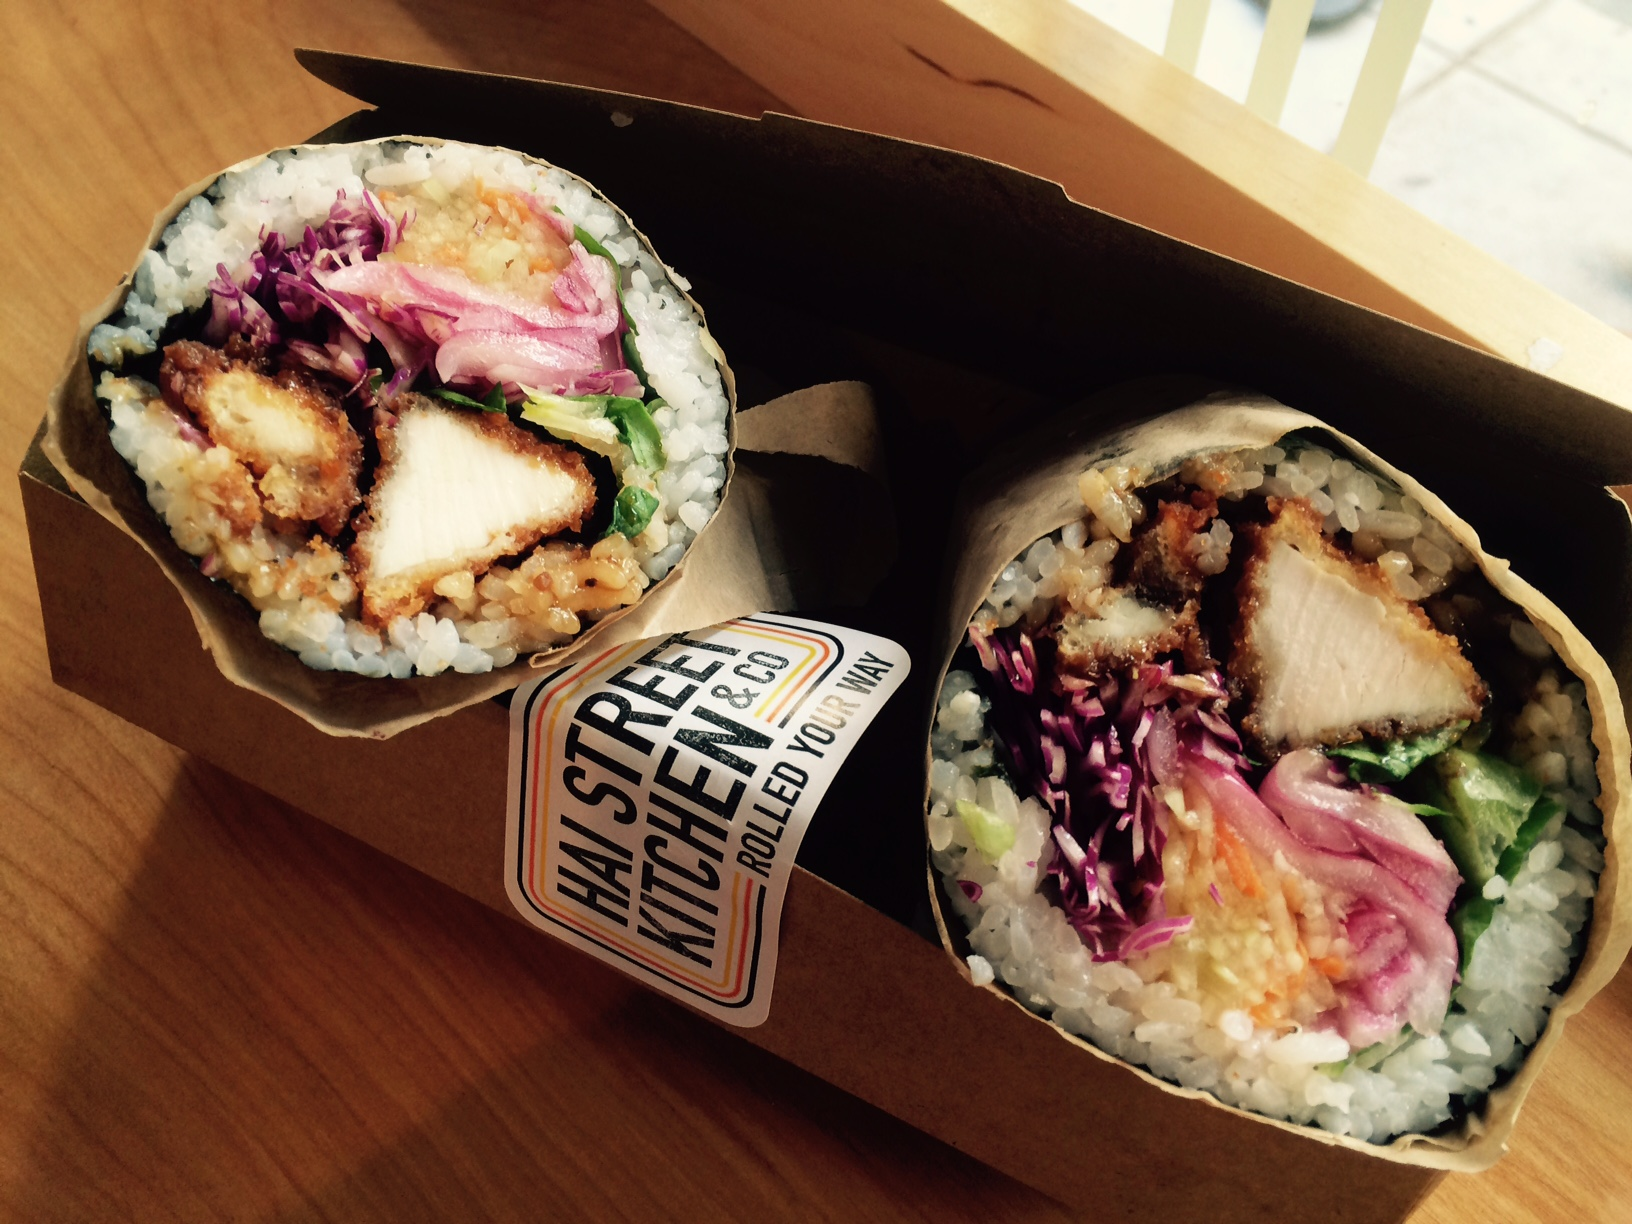 fried sushi burritos + a free lunch at hai street kitchen